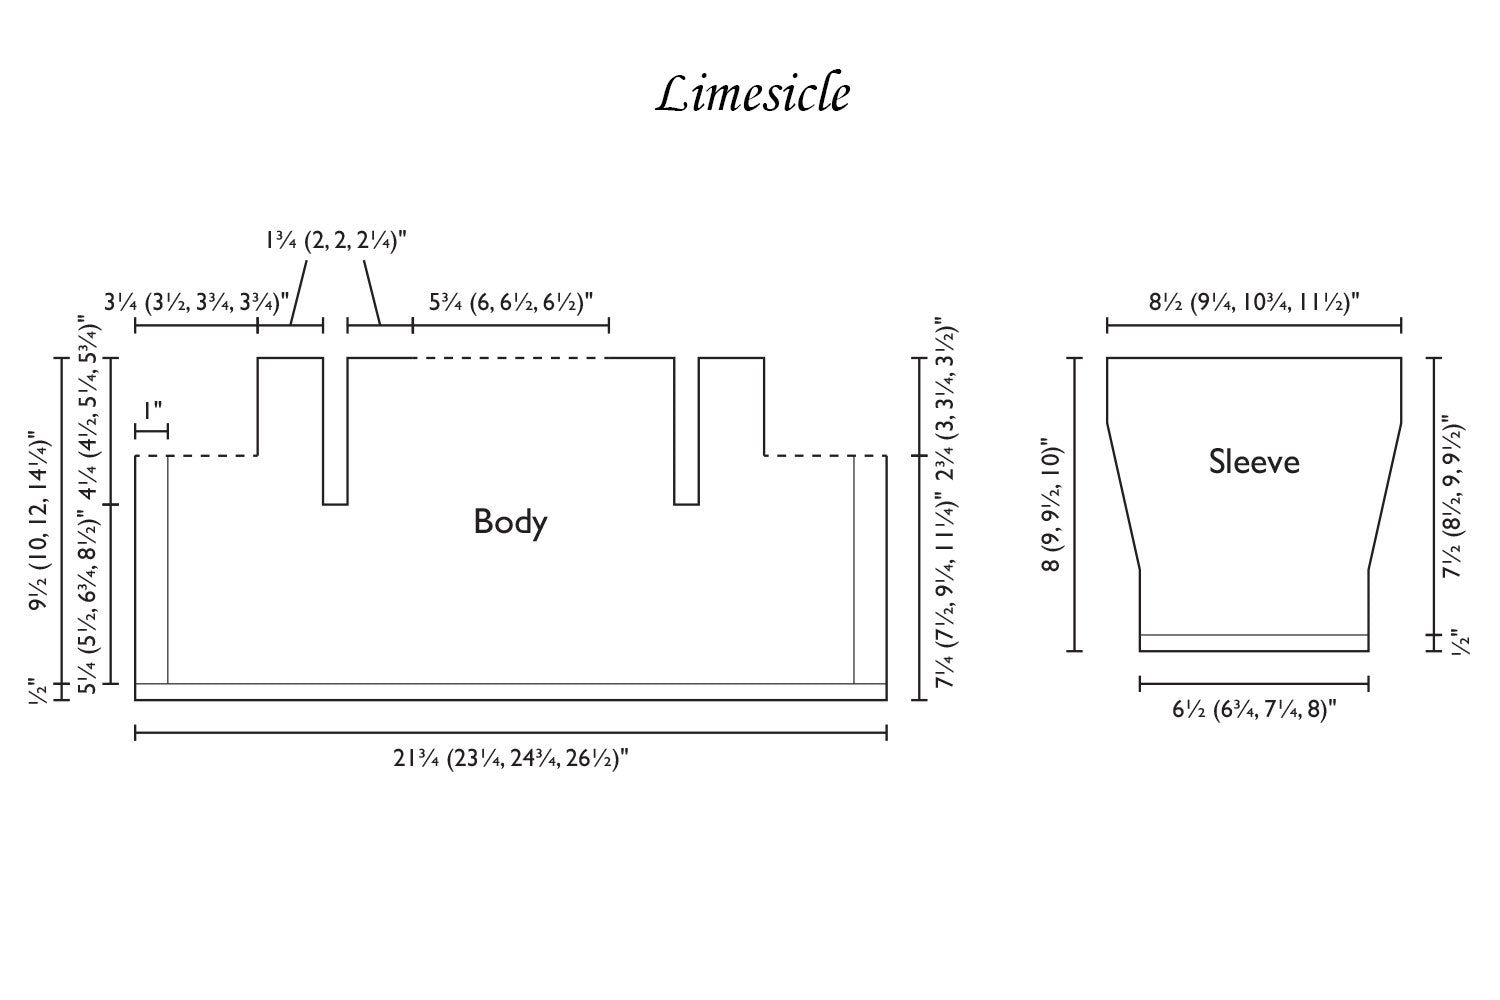 Detailed schematic line drawing with dimensions for Limesicle baby cardigan